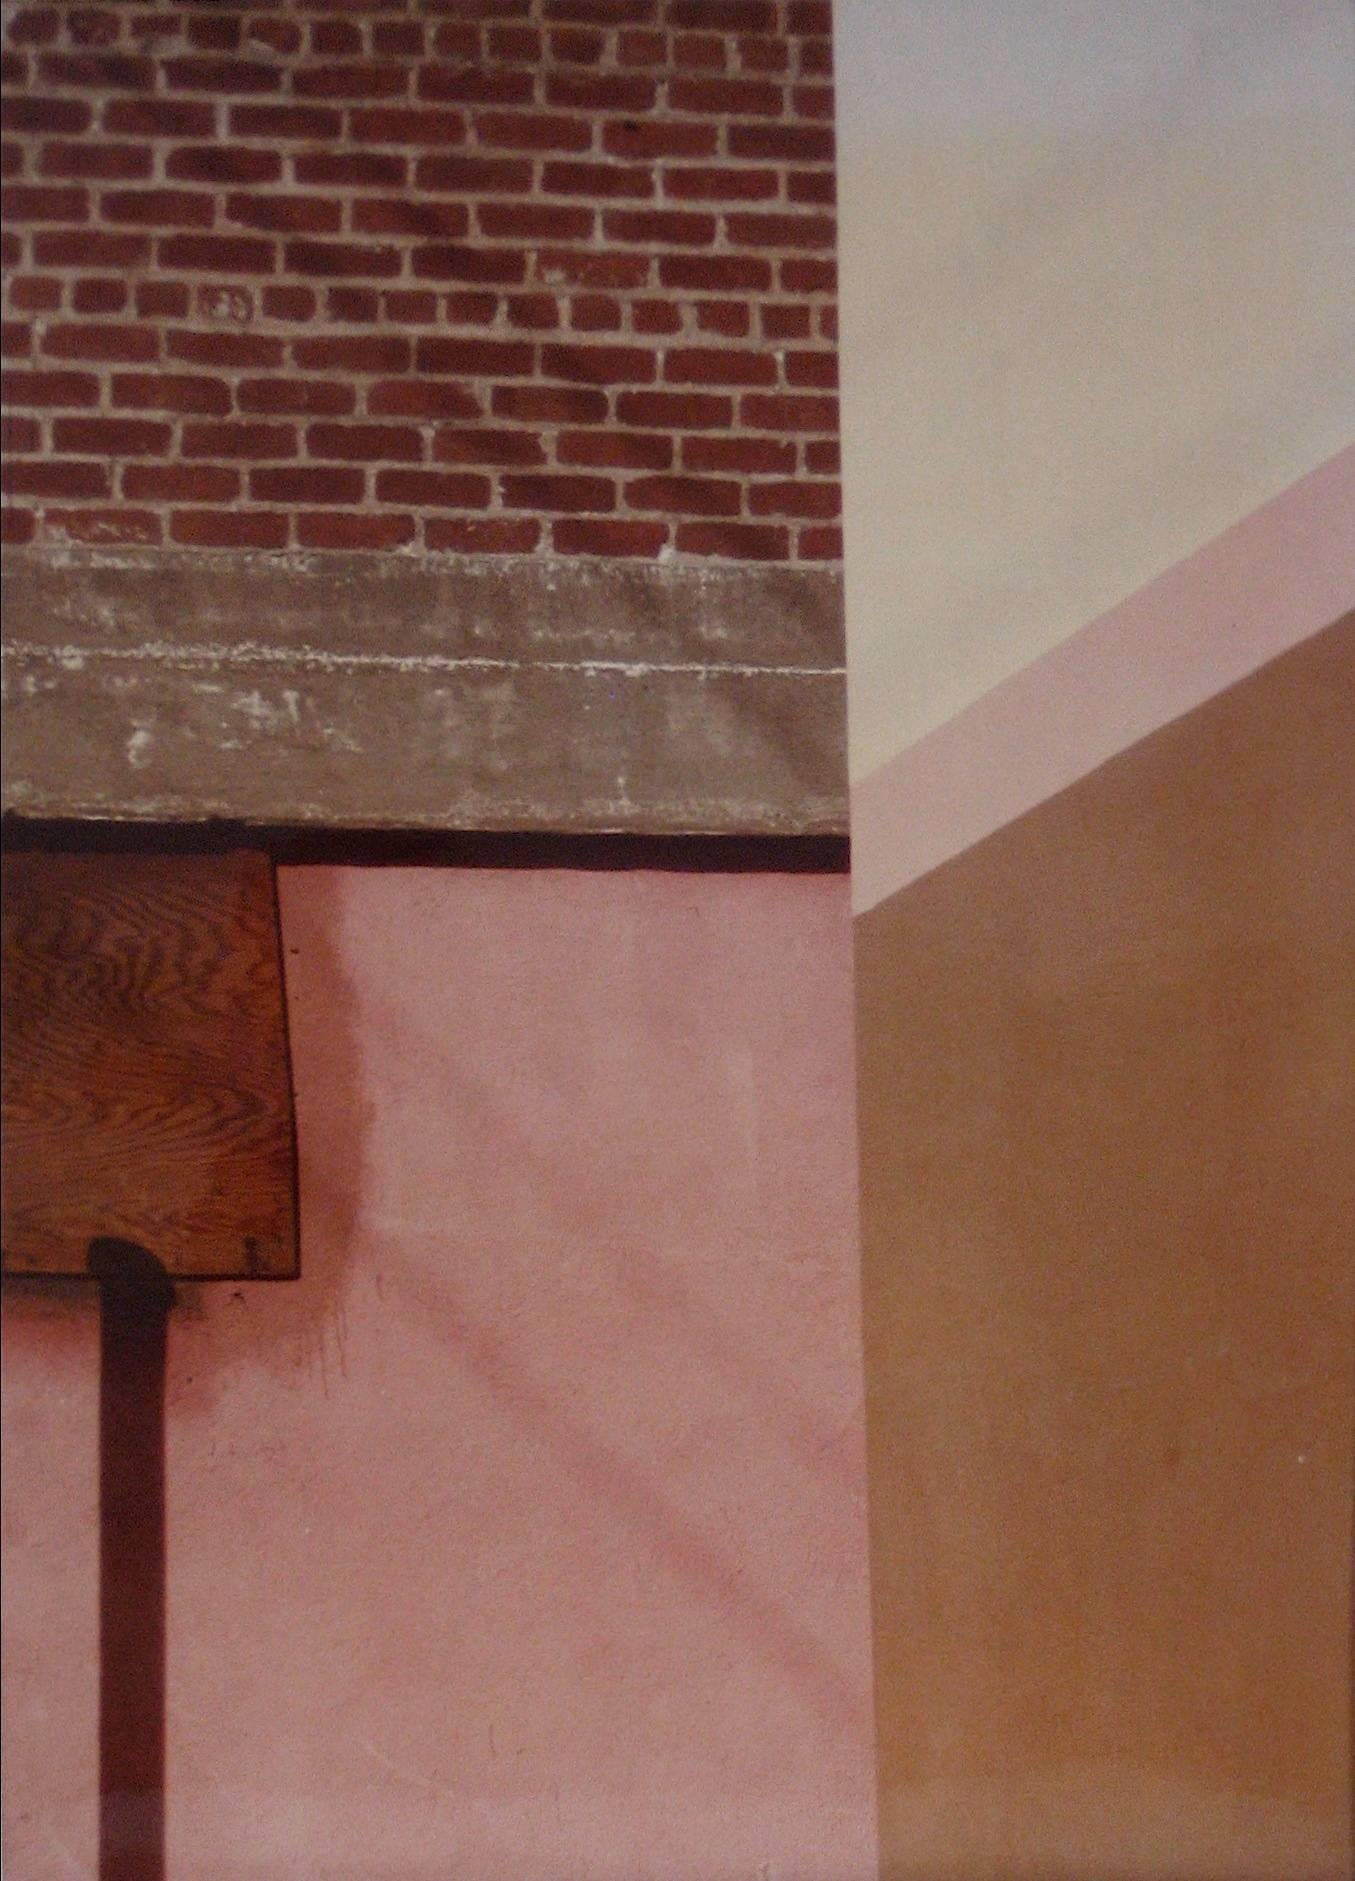 """City Art 17"" Abstracted Landscape Color Photograph with Brick and Pink, 1970s"